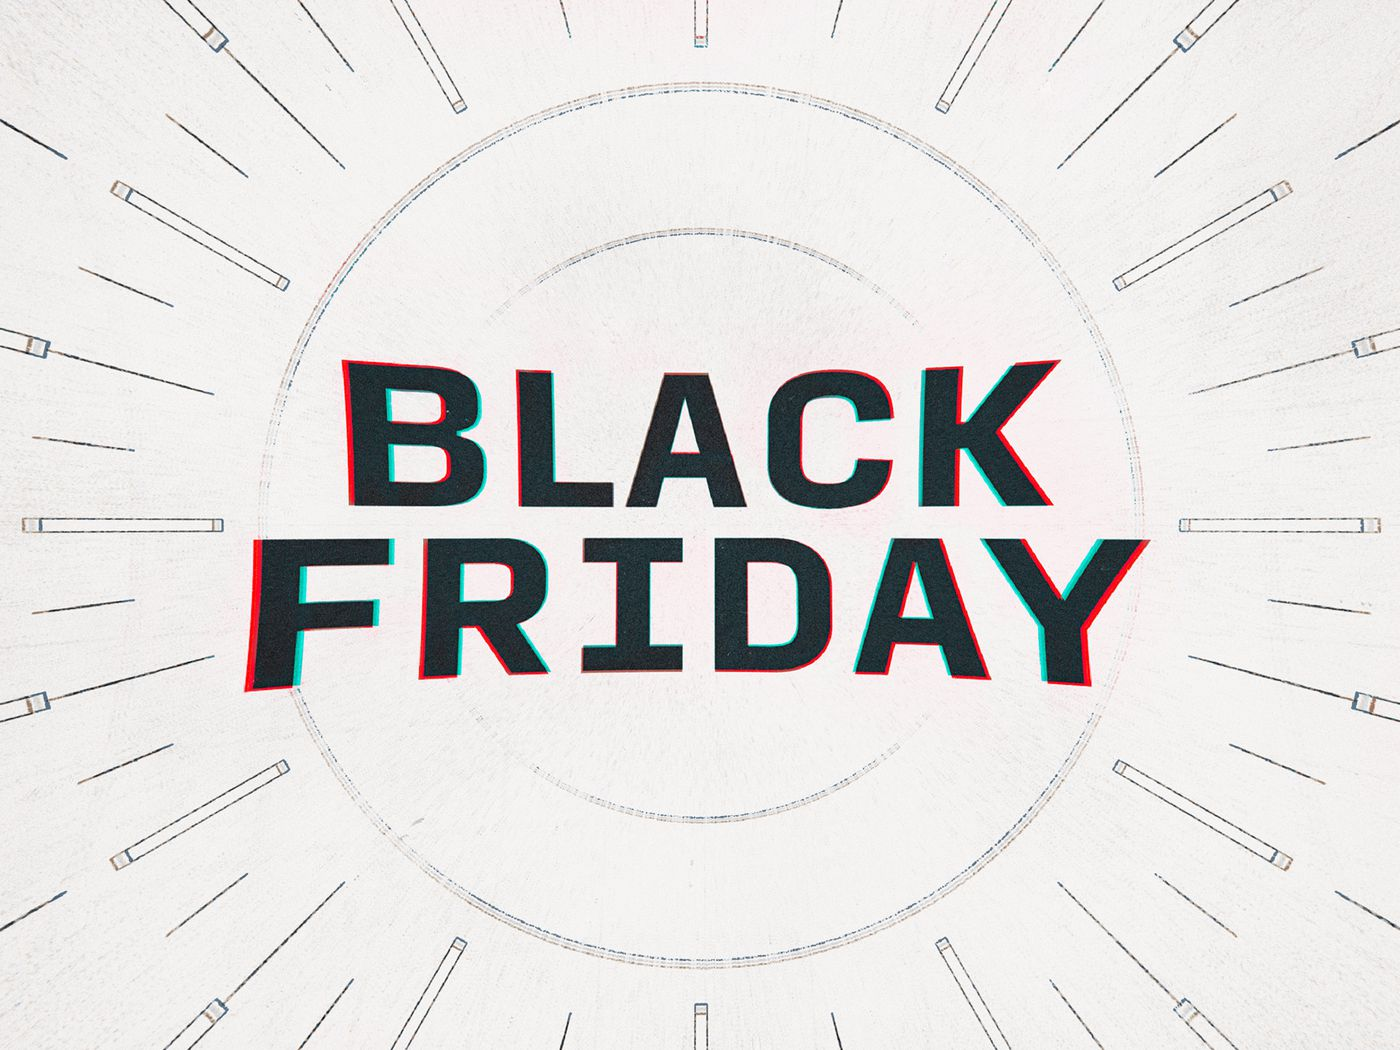 black friday deals when sales start at amazon best buy walmart and more the verge black friday deals when sales start at